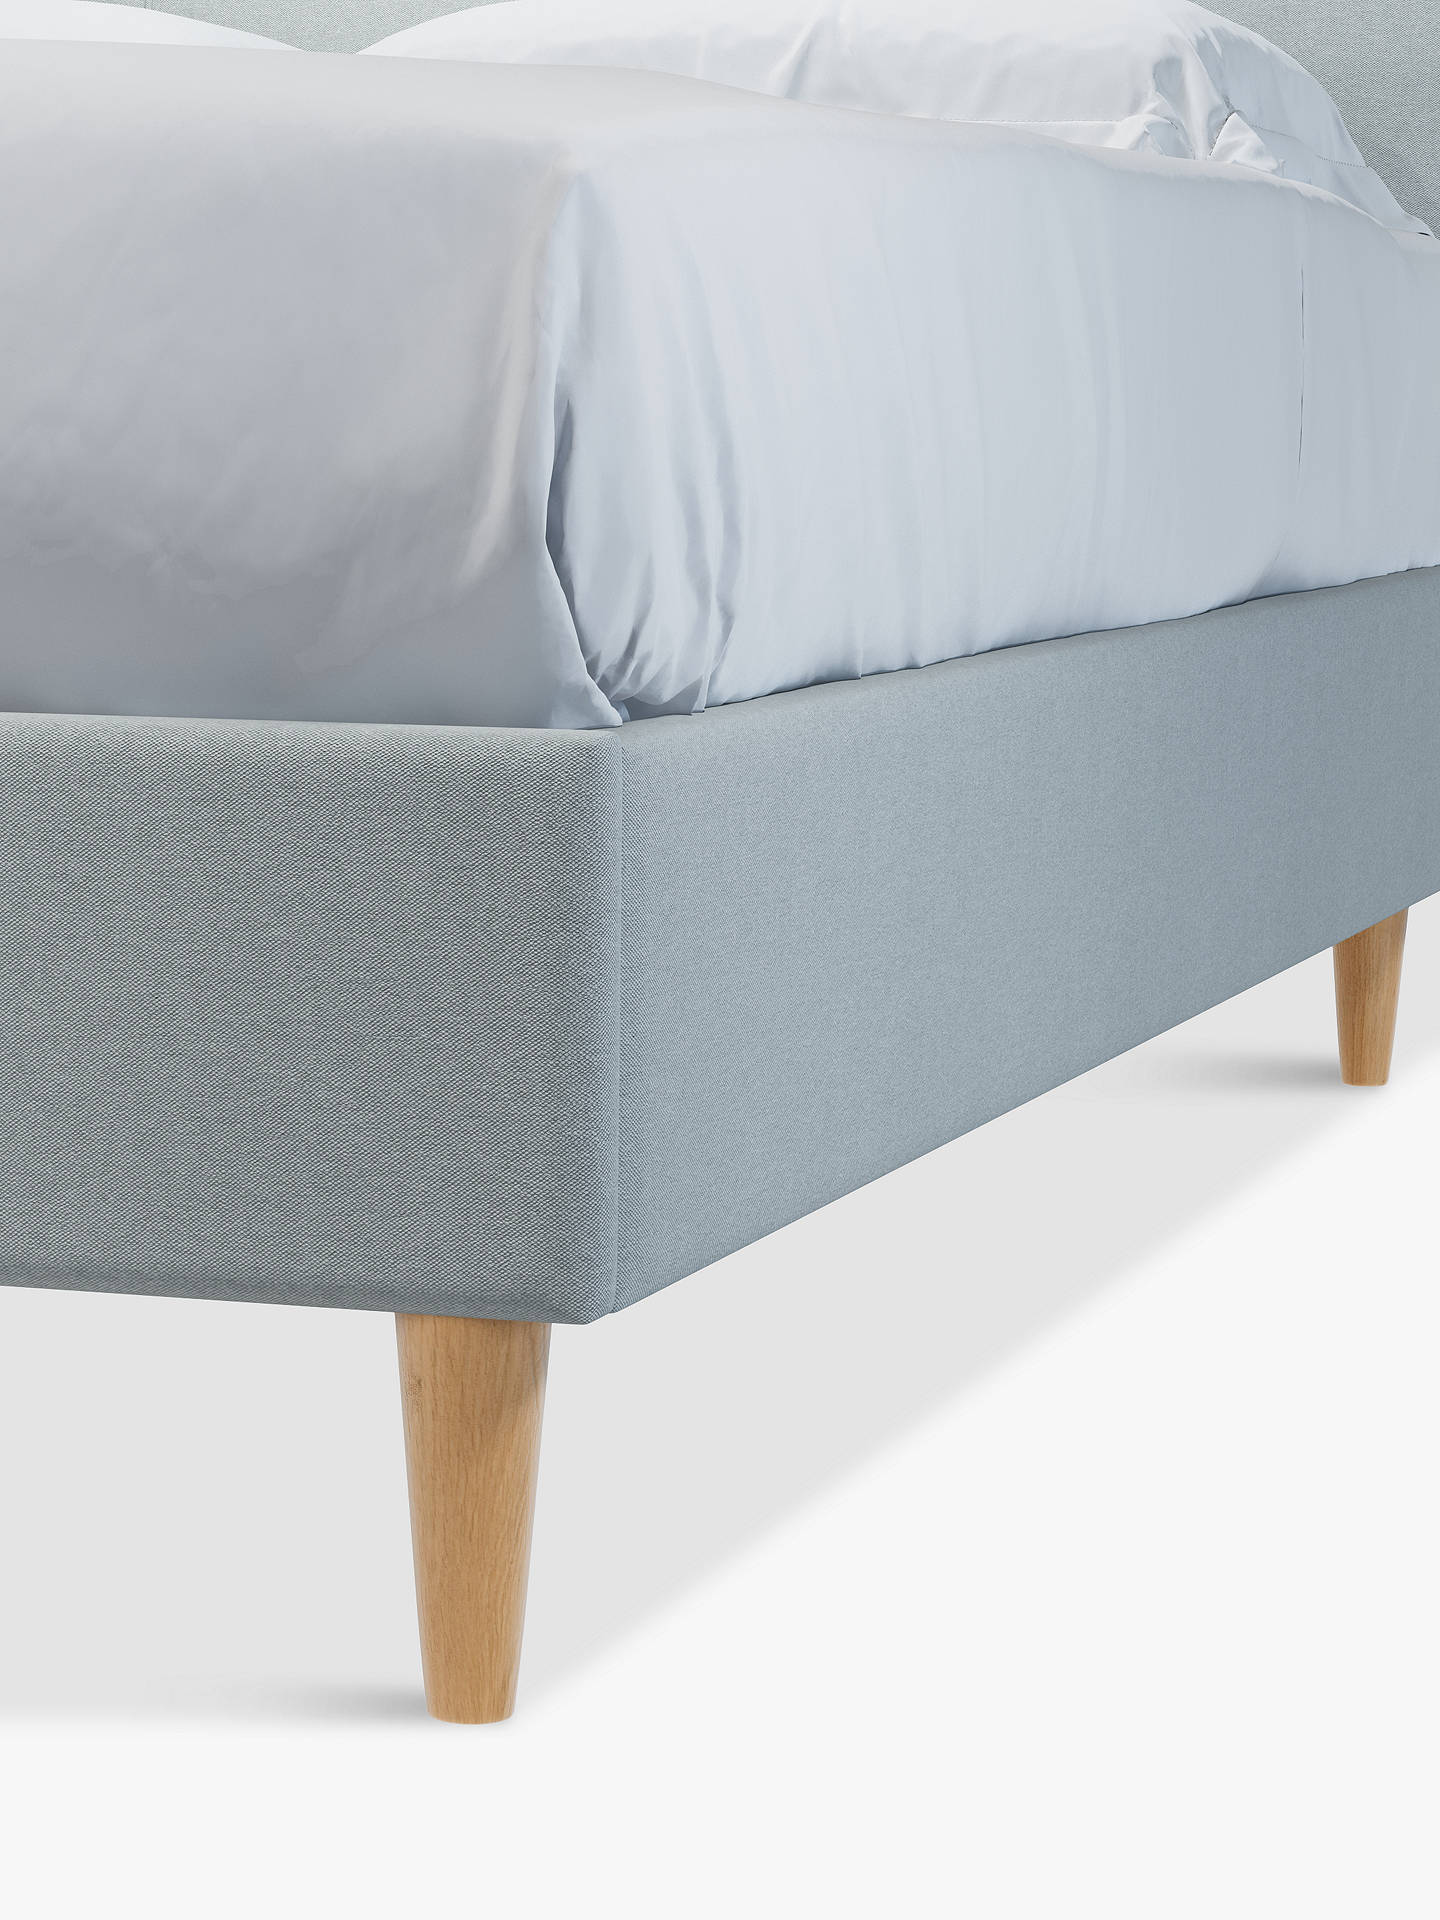 Buy John Lewis & Partners Twiggy Upholstered Bed Frame, King Size, Marylamb Slate Online at johnlewis.com